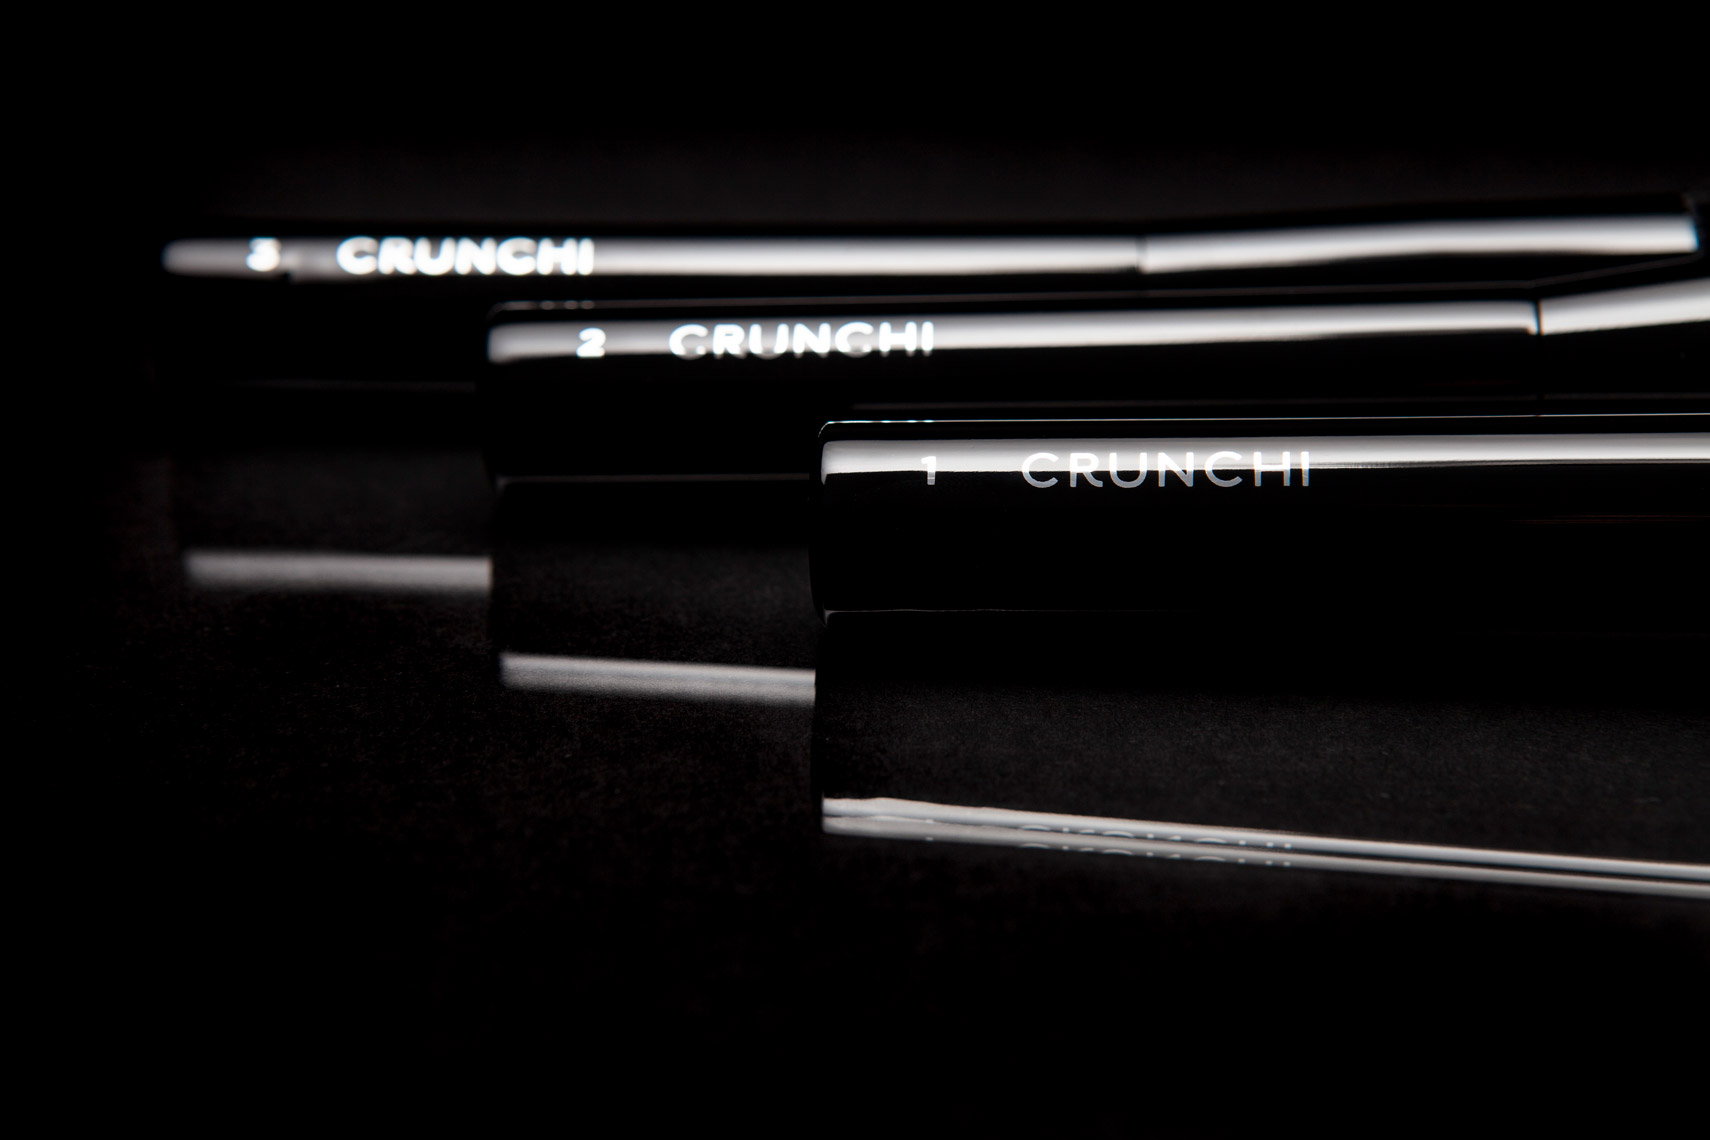 Crunchi, Makeup Brush, Makeup, Cosmetics, Makeup Photography, Cosmetic Photography, Creative Still, Jewelry, fashion jewelry, jewelry photography, product photography, product photo, studio photography, Ian Jacob, Ian Jacob Photography